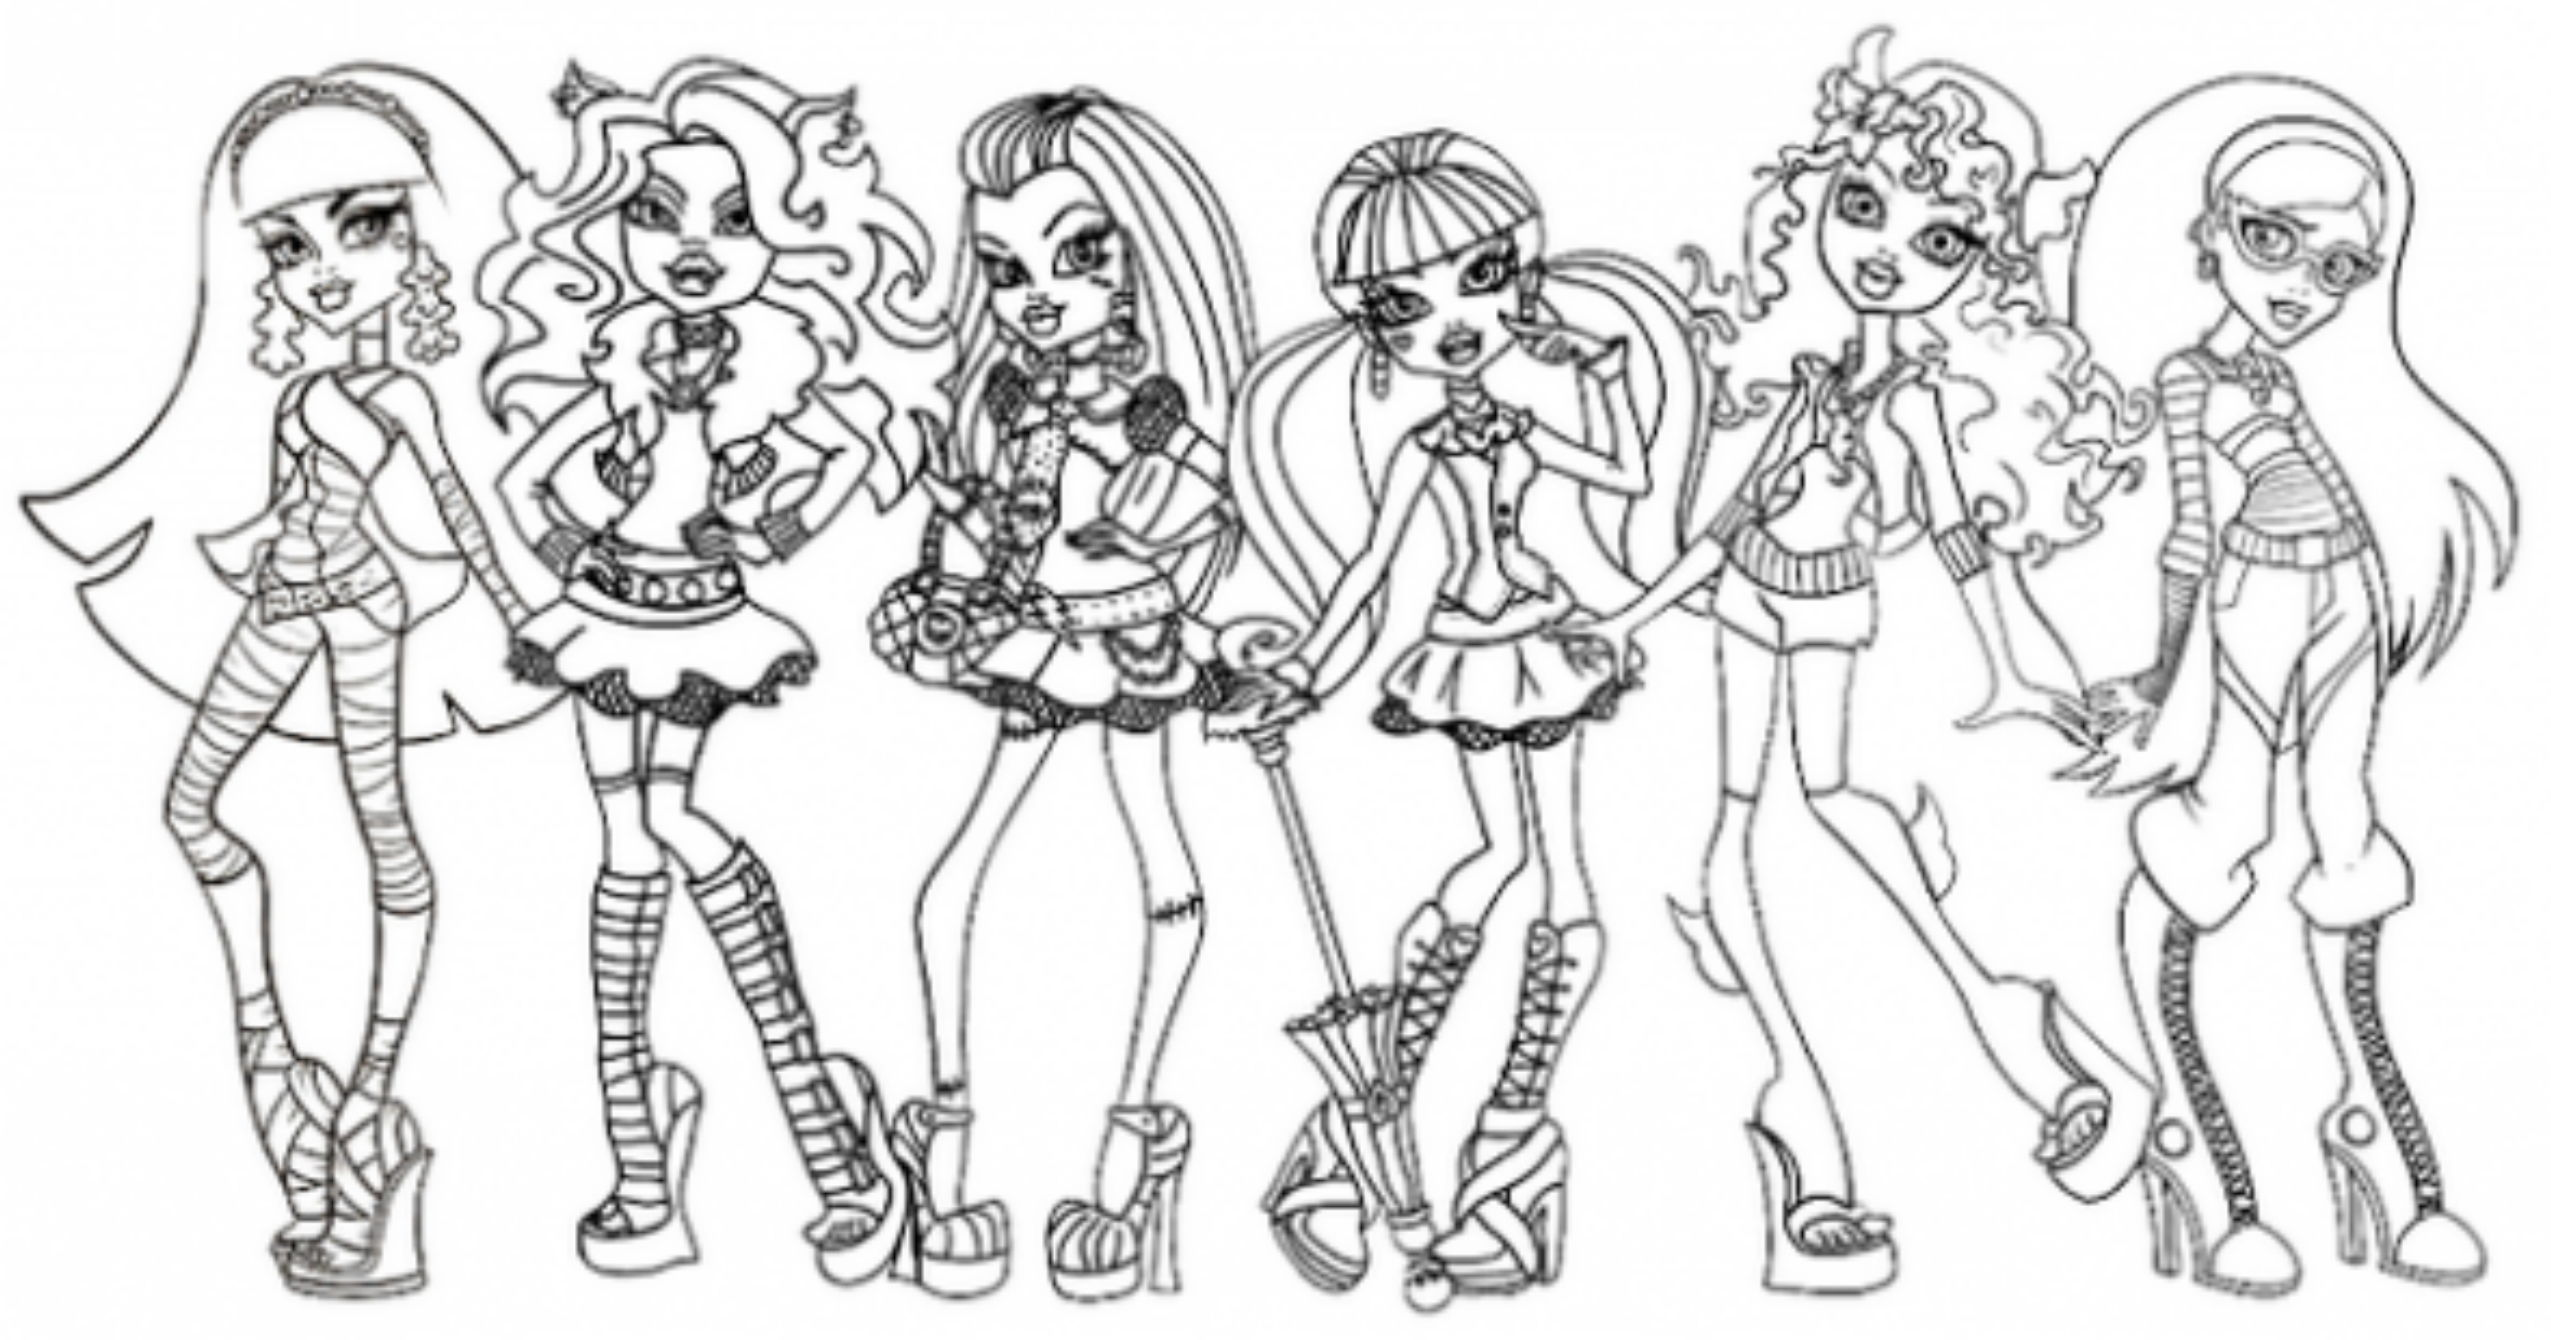 Monster high black and white clipart png stock Monster High Black And White Coloring Pages png stock